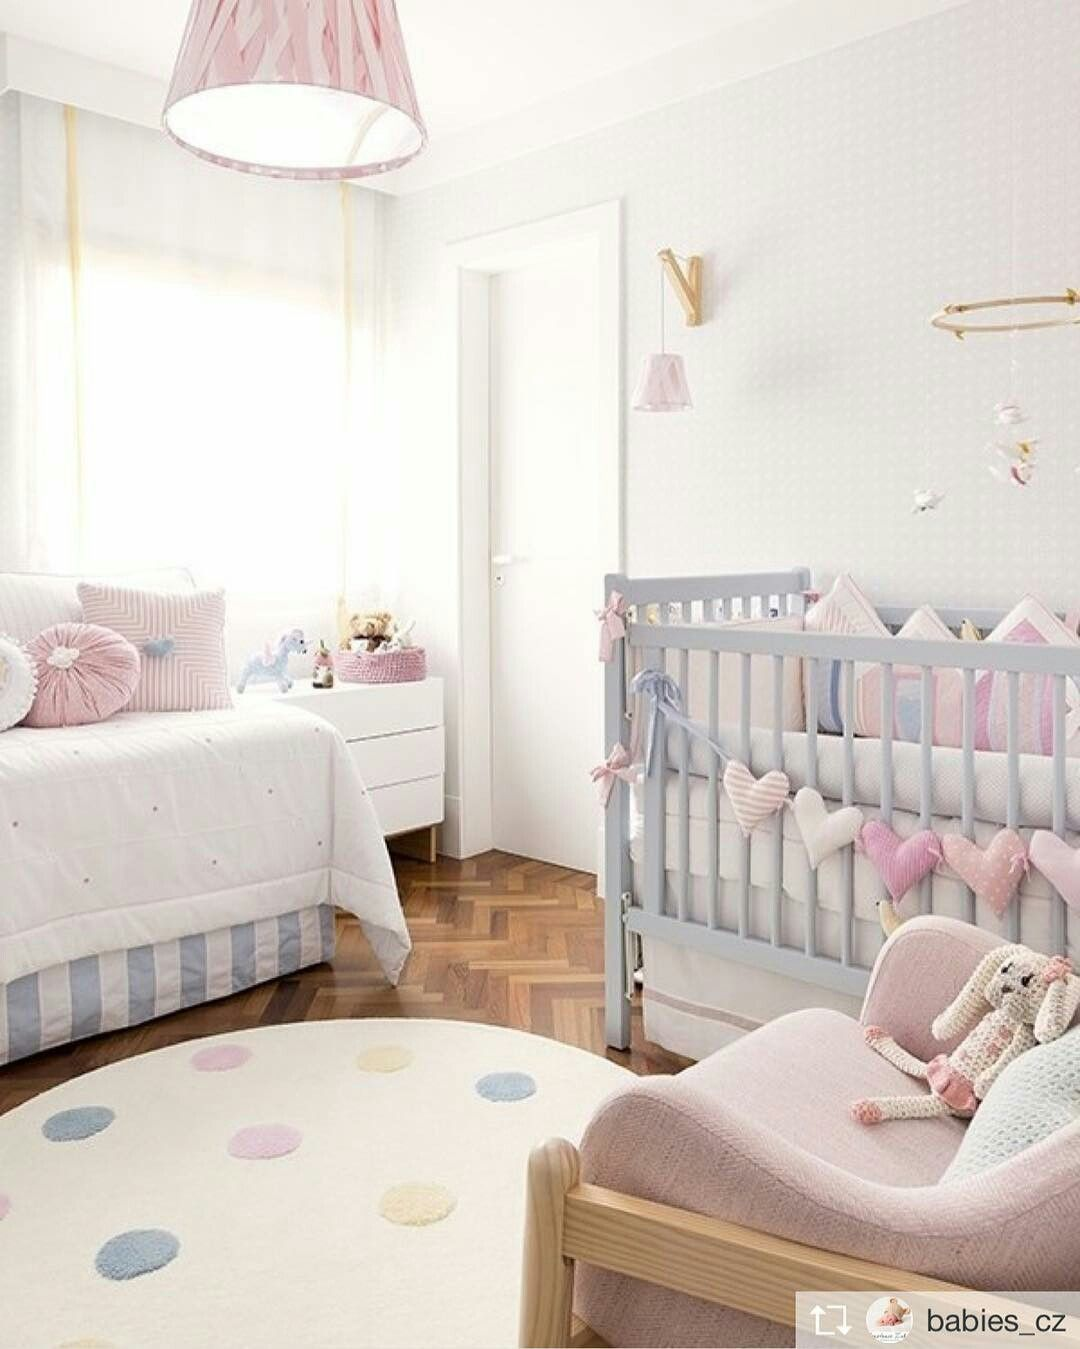 delicado neutral baby bedding sets pinterest quarto bebe quartos e quarto bebe menina. Black Bedroom Furniture Sets. Home Design Ideas